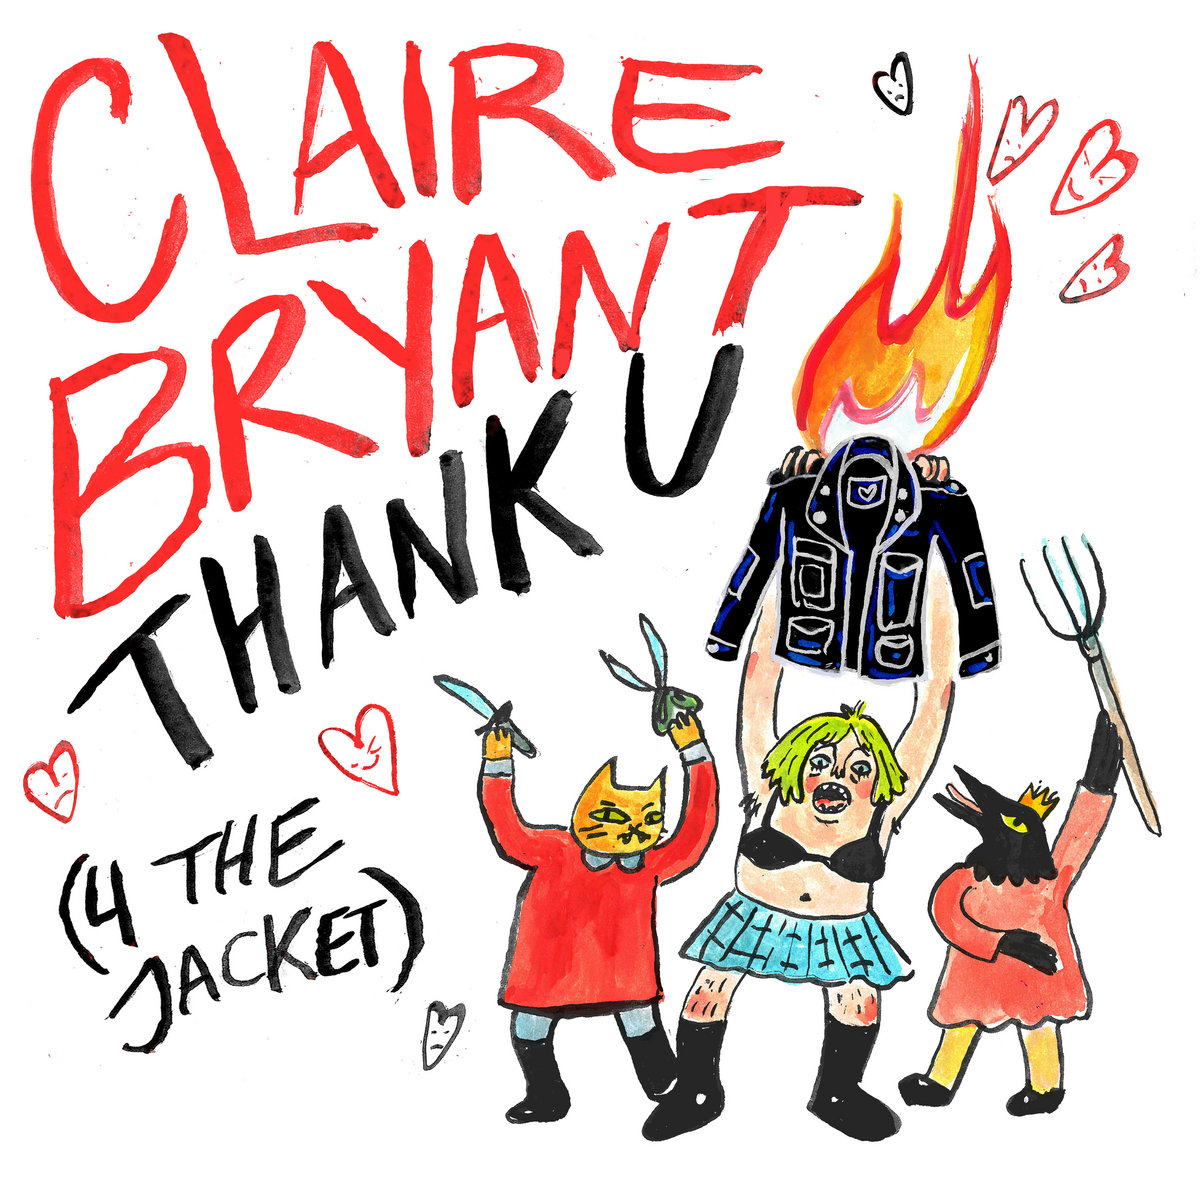 Thank U (4 the Jacket) by Claire Bryant